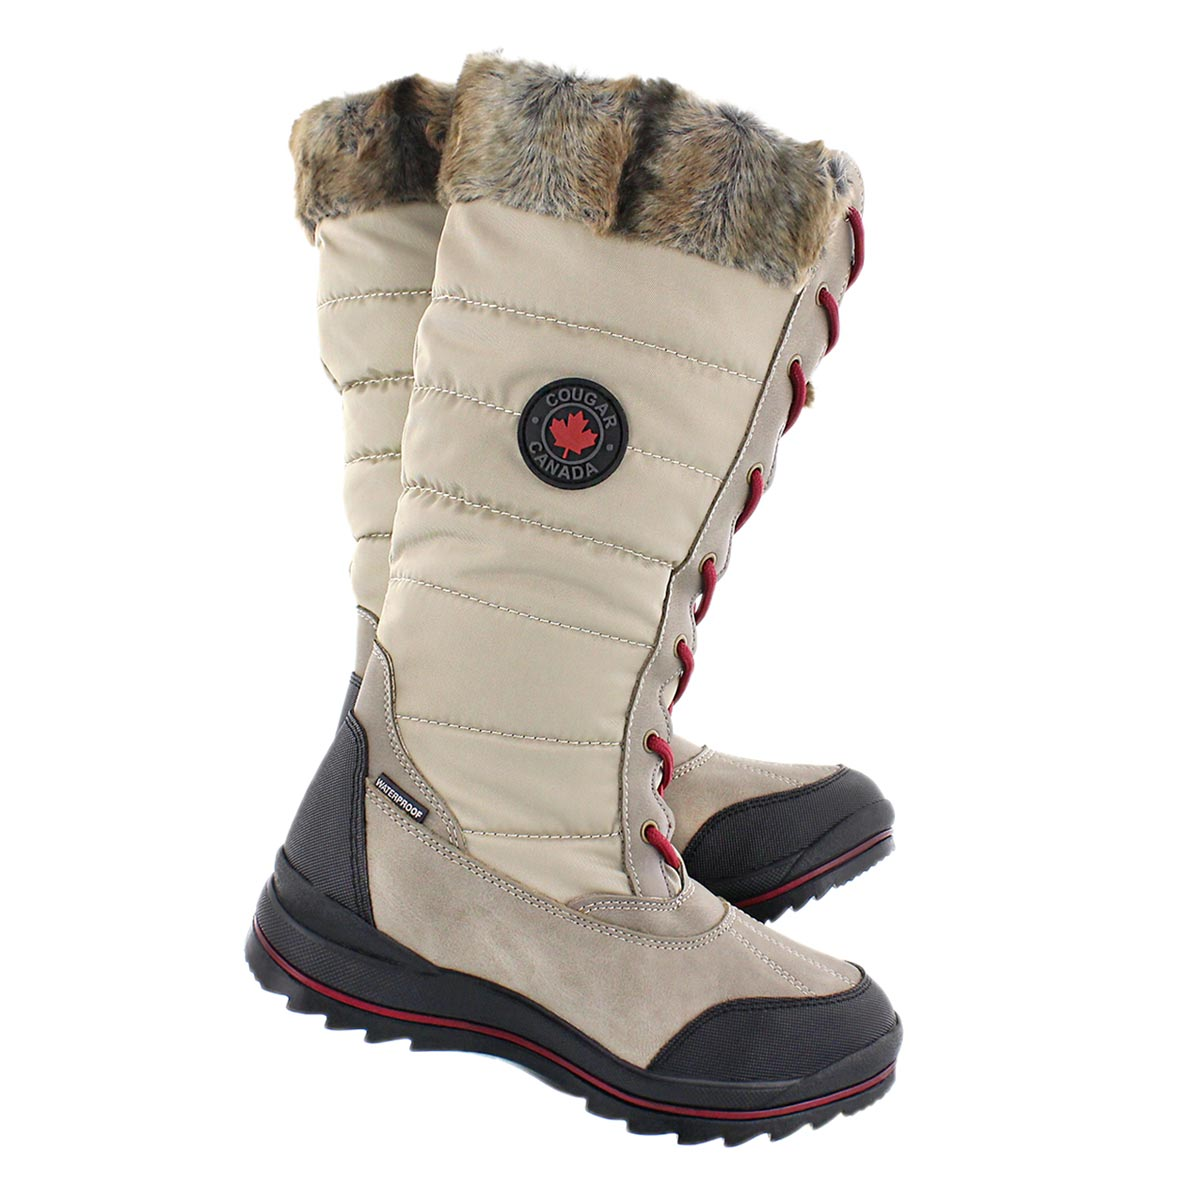 Lds Chateau oatmeal wtpf winter boot